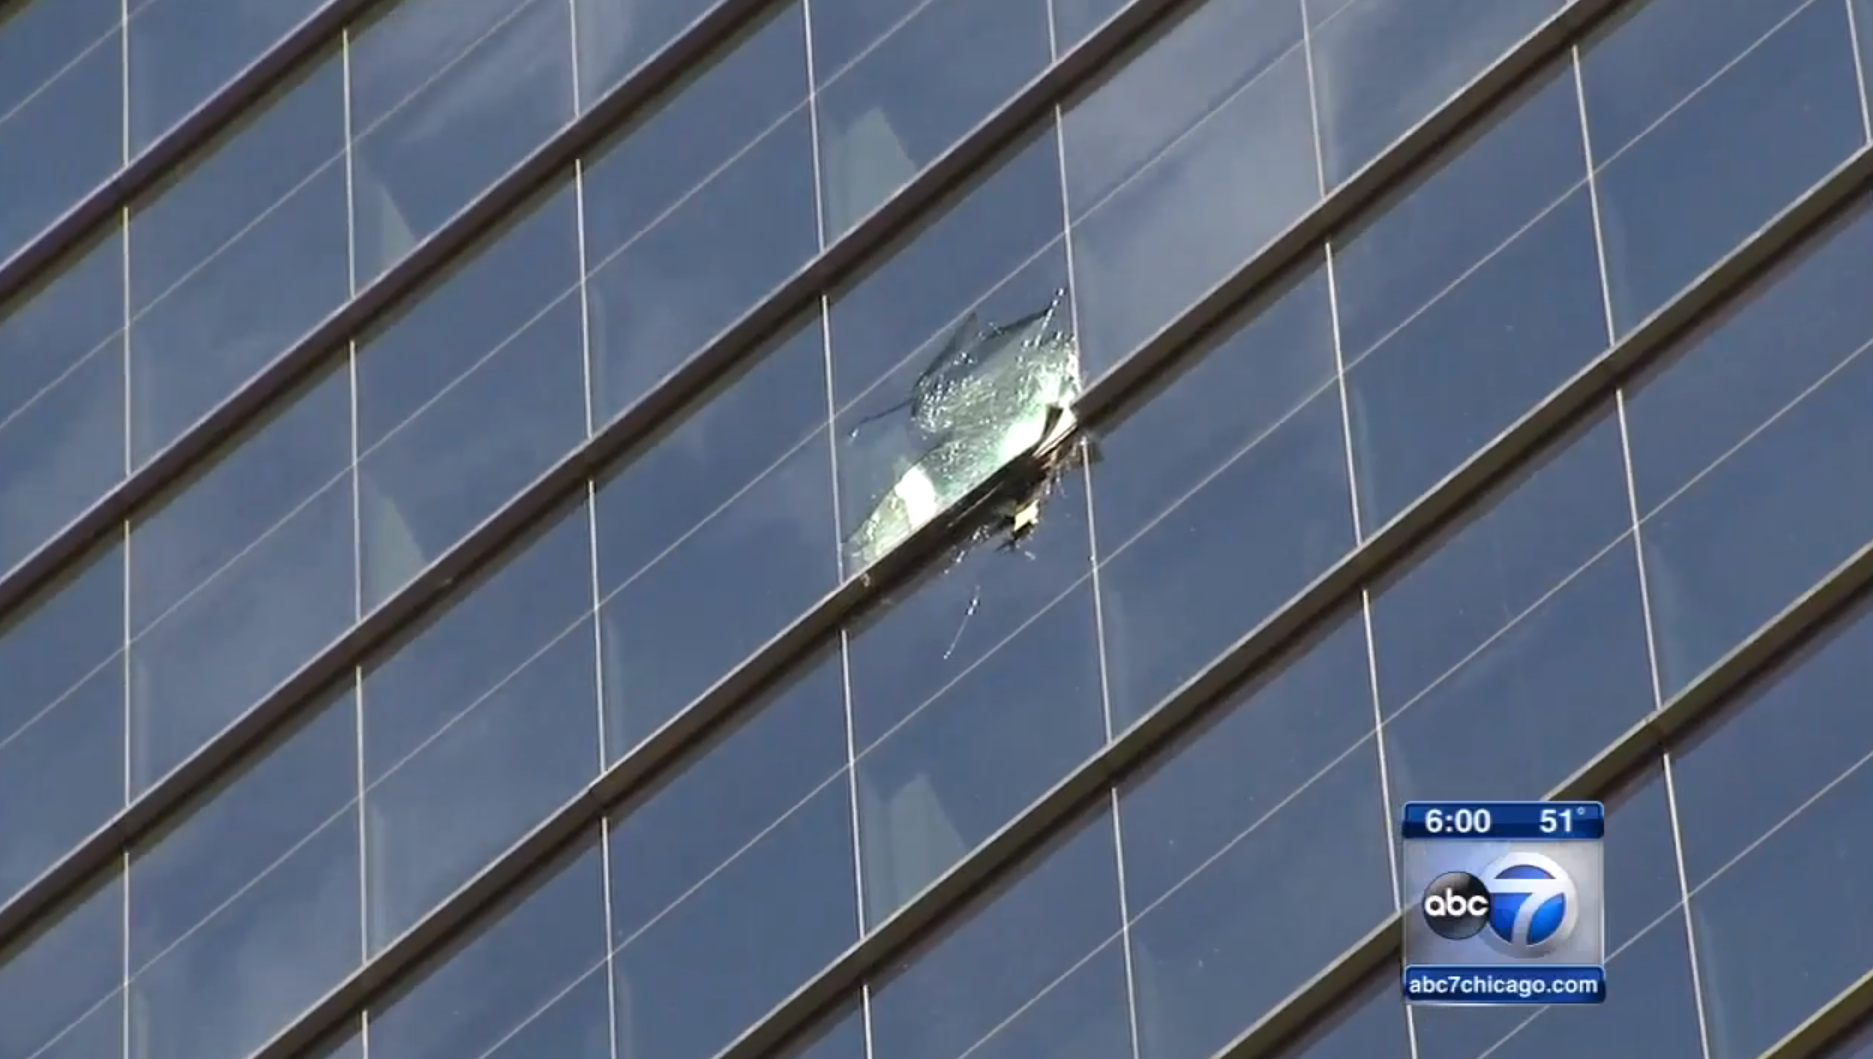 Chicago Skyscrapers 'Raining Glass' After Scary High Winds